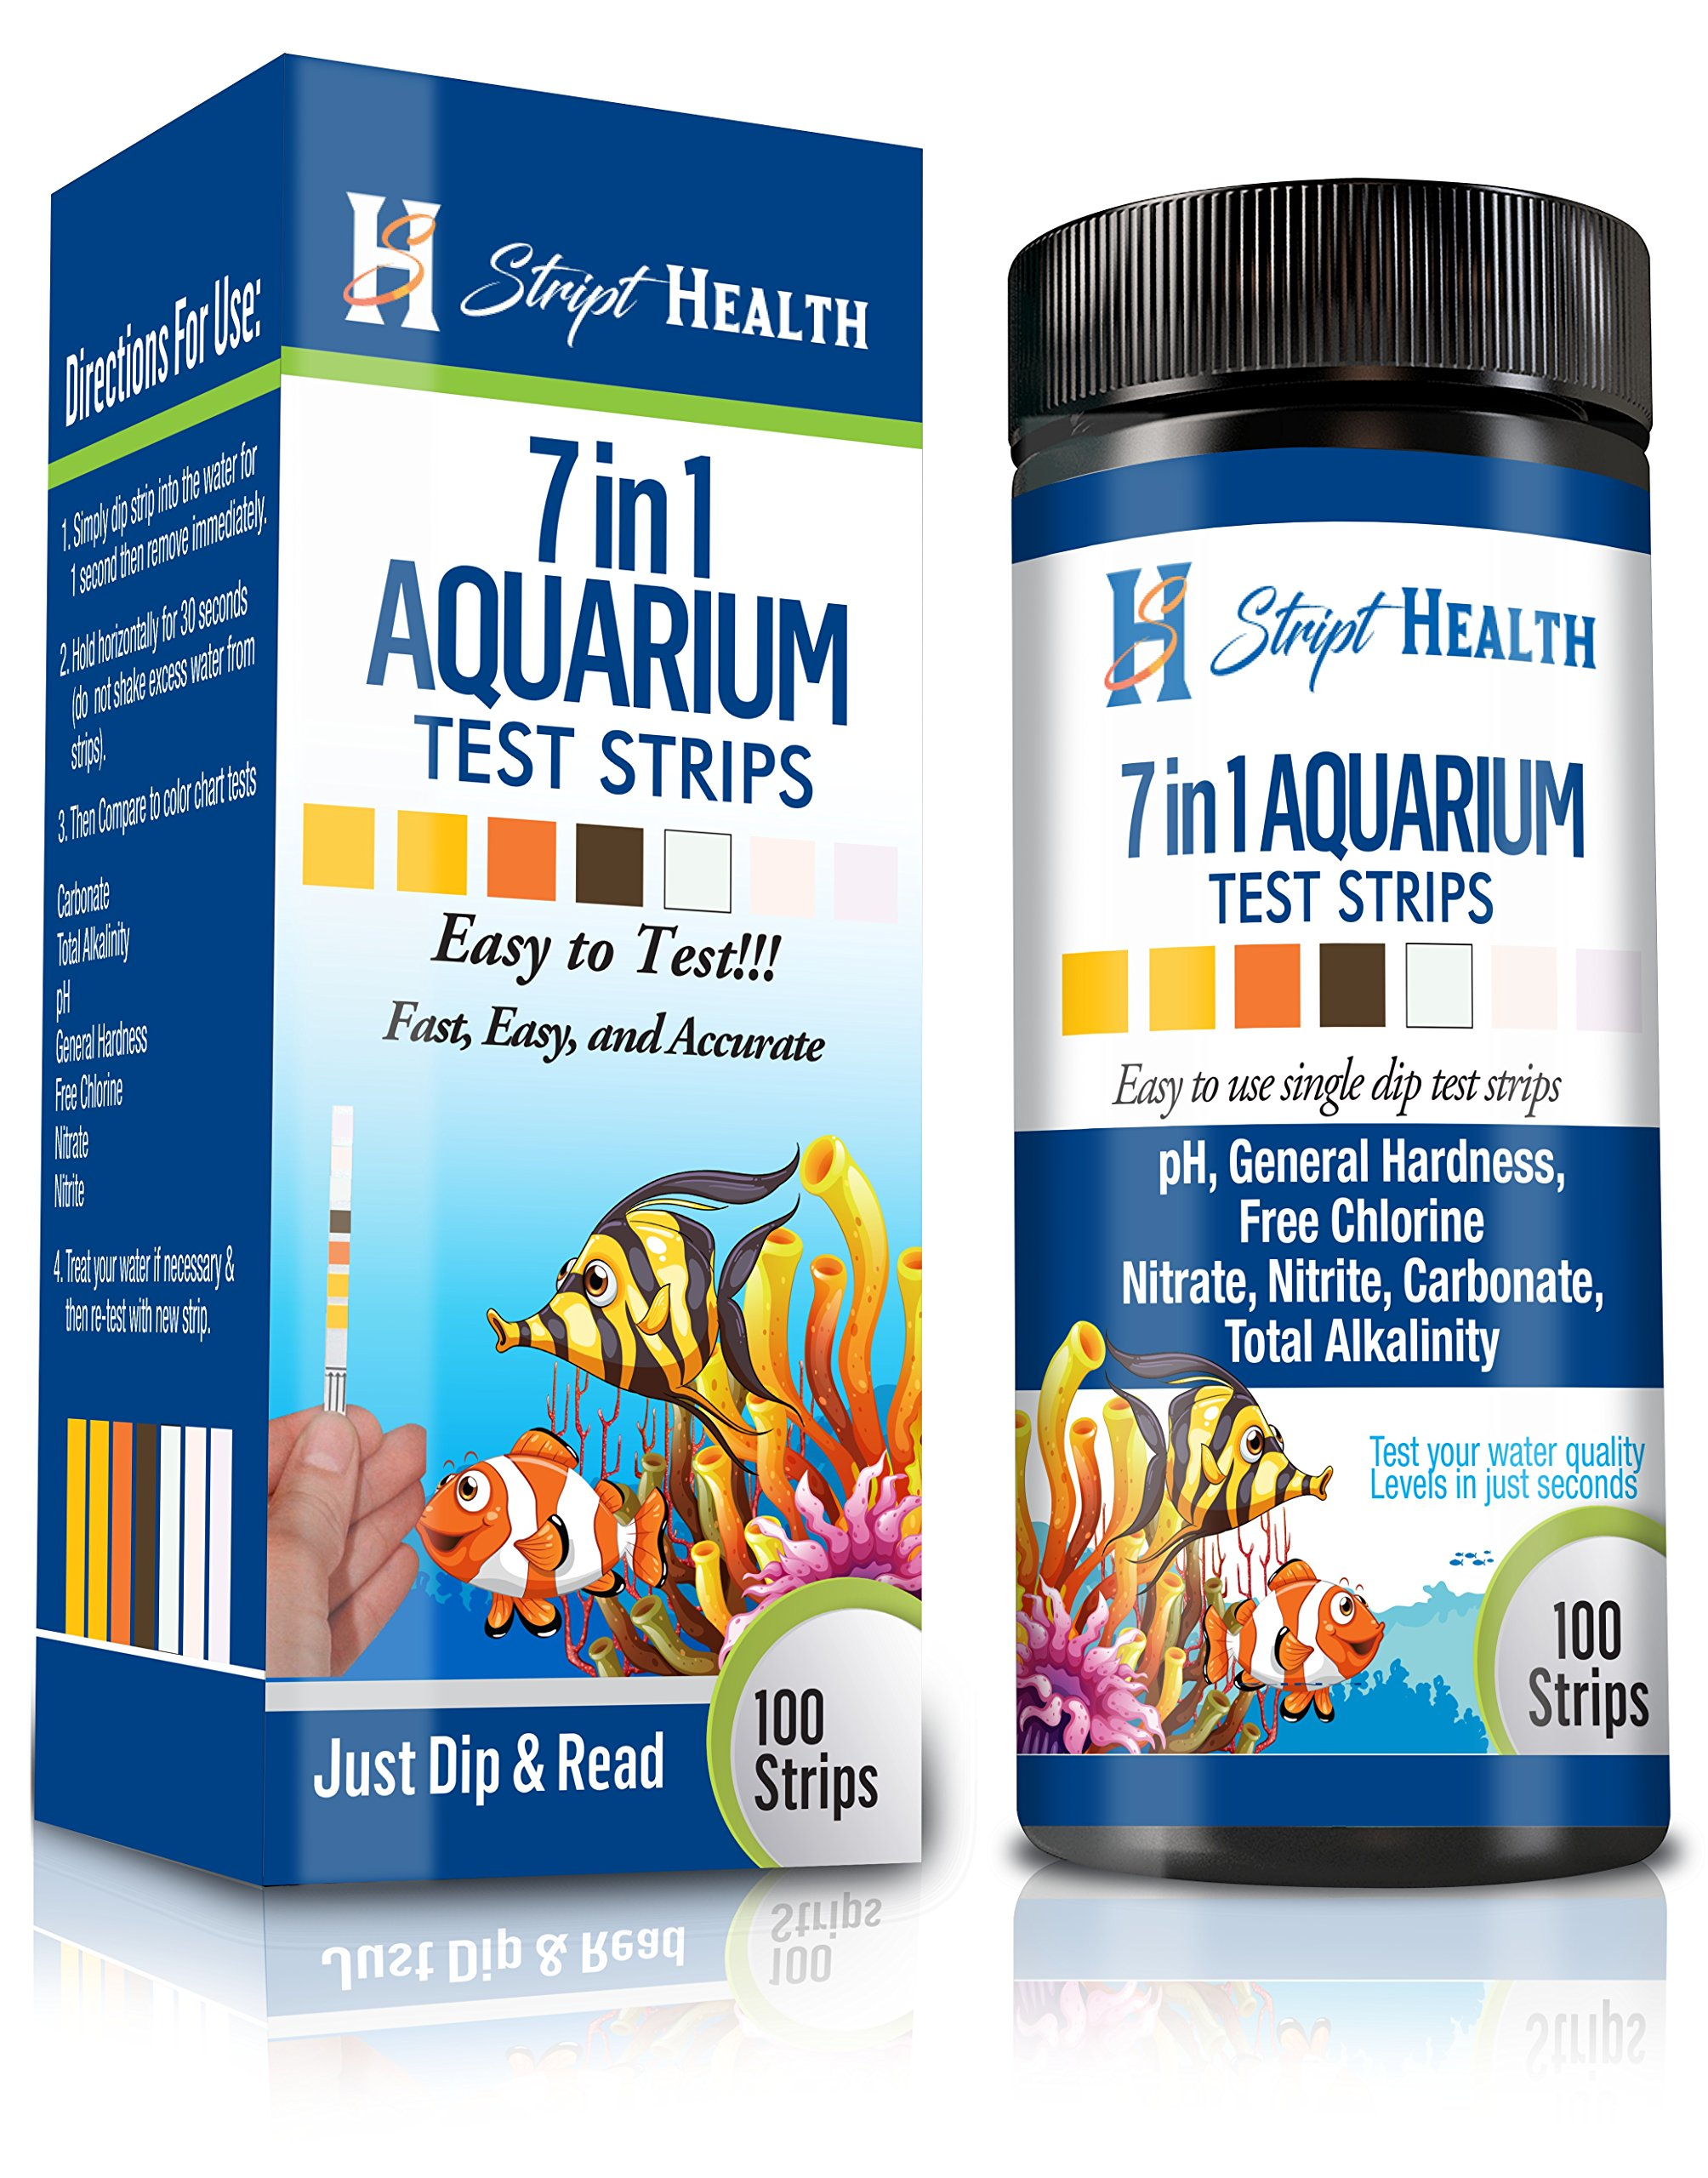 Stript Health 7-Way Aquarium Test Strips 100 Count - Easily Test Your Salt/Fresh Water Tank - Spend More Time Enjoying Your Fish - One Simple Strip Test - Rapid Results - Best Value Kit by Stript Health